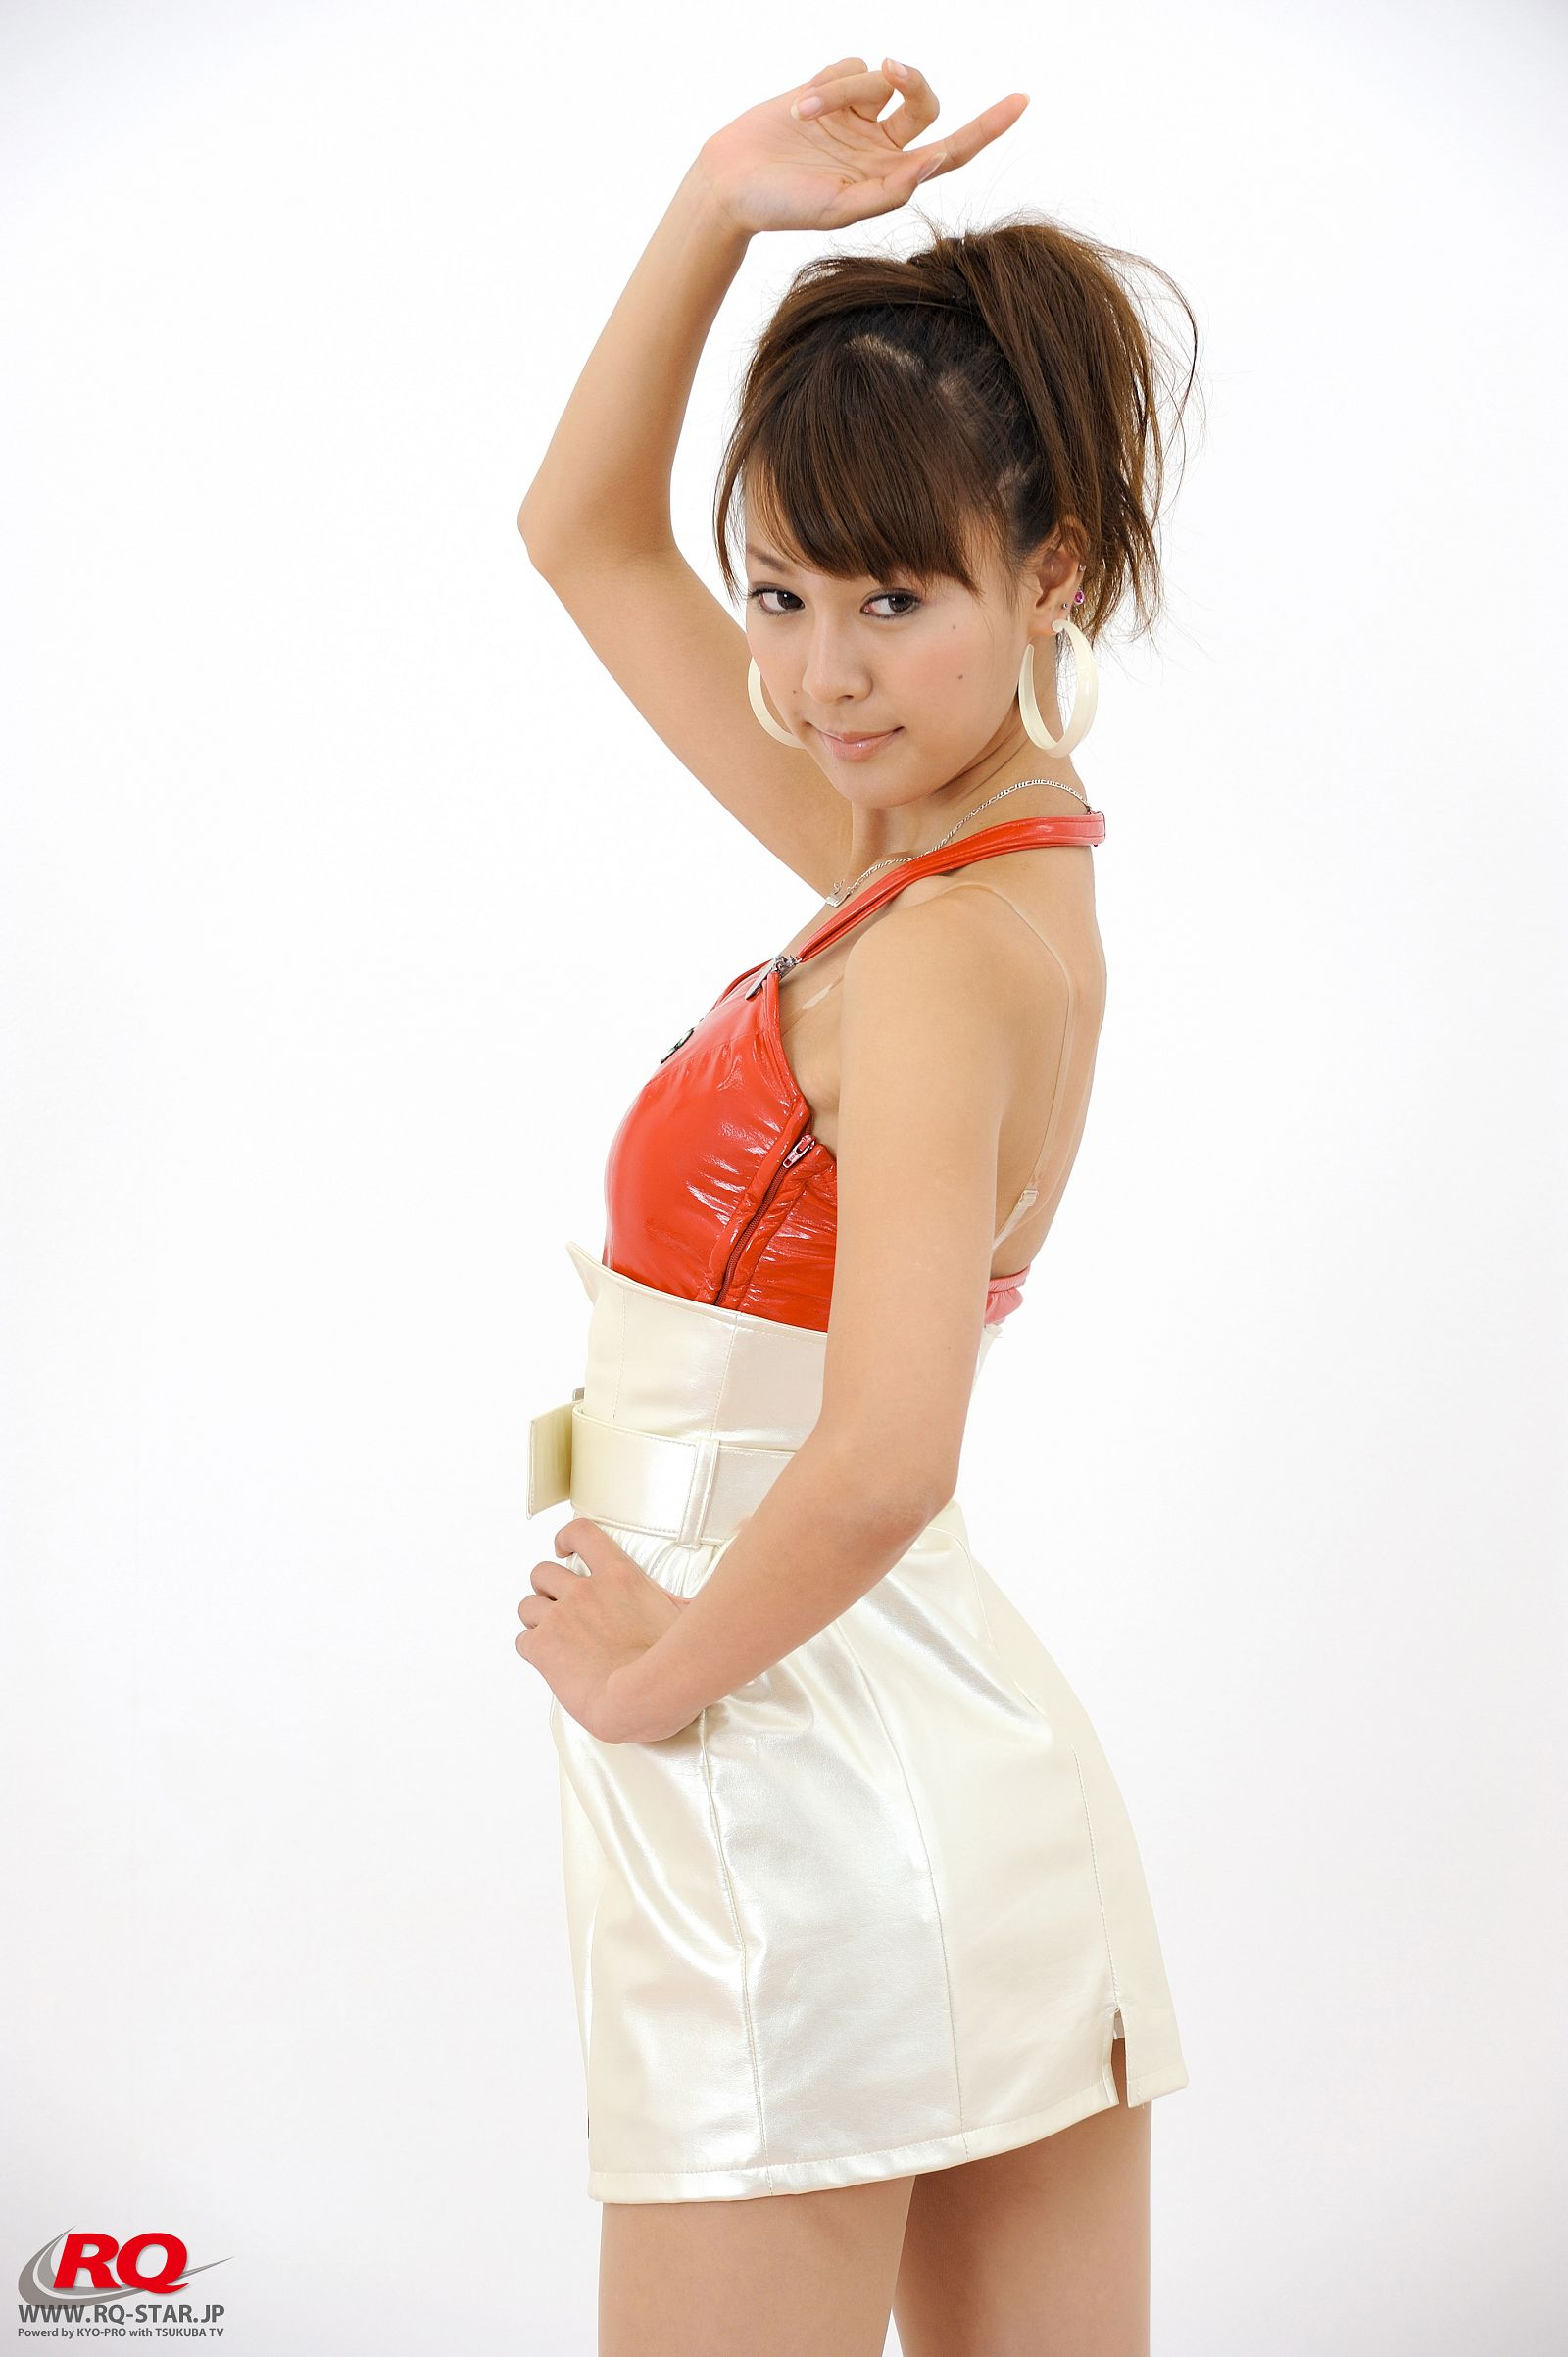 [RQ STAR美女] NO.0067 Tomoe Nakagawa 中川知映 Race Queen 2008 Green Tec[98P] RQ STAR 第4张